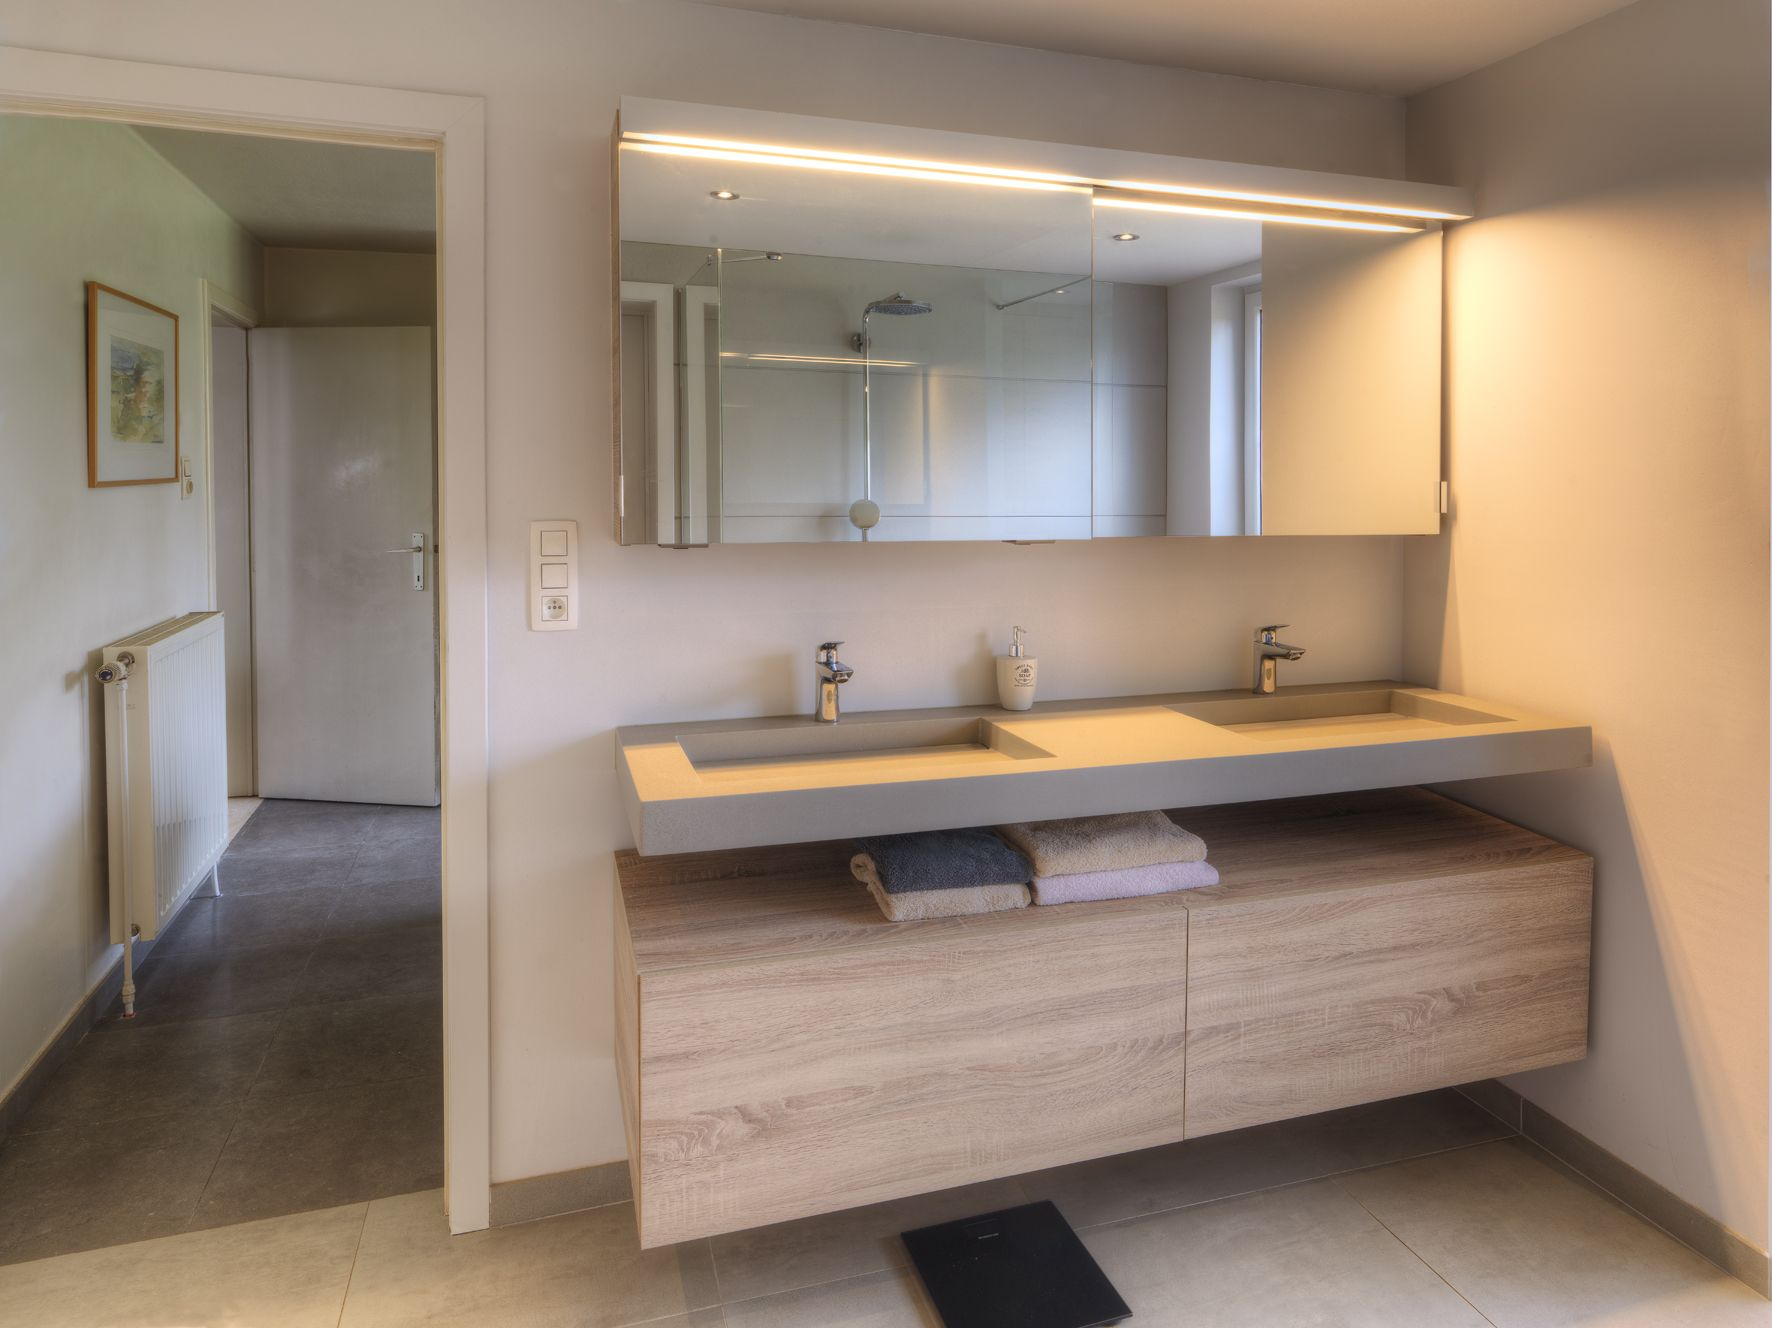 Total Bathroom Renovation By Dzignstone With Bathroom Furniture By - Total bathroom renovations